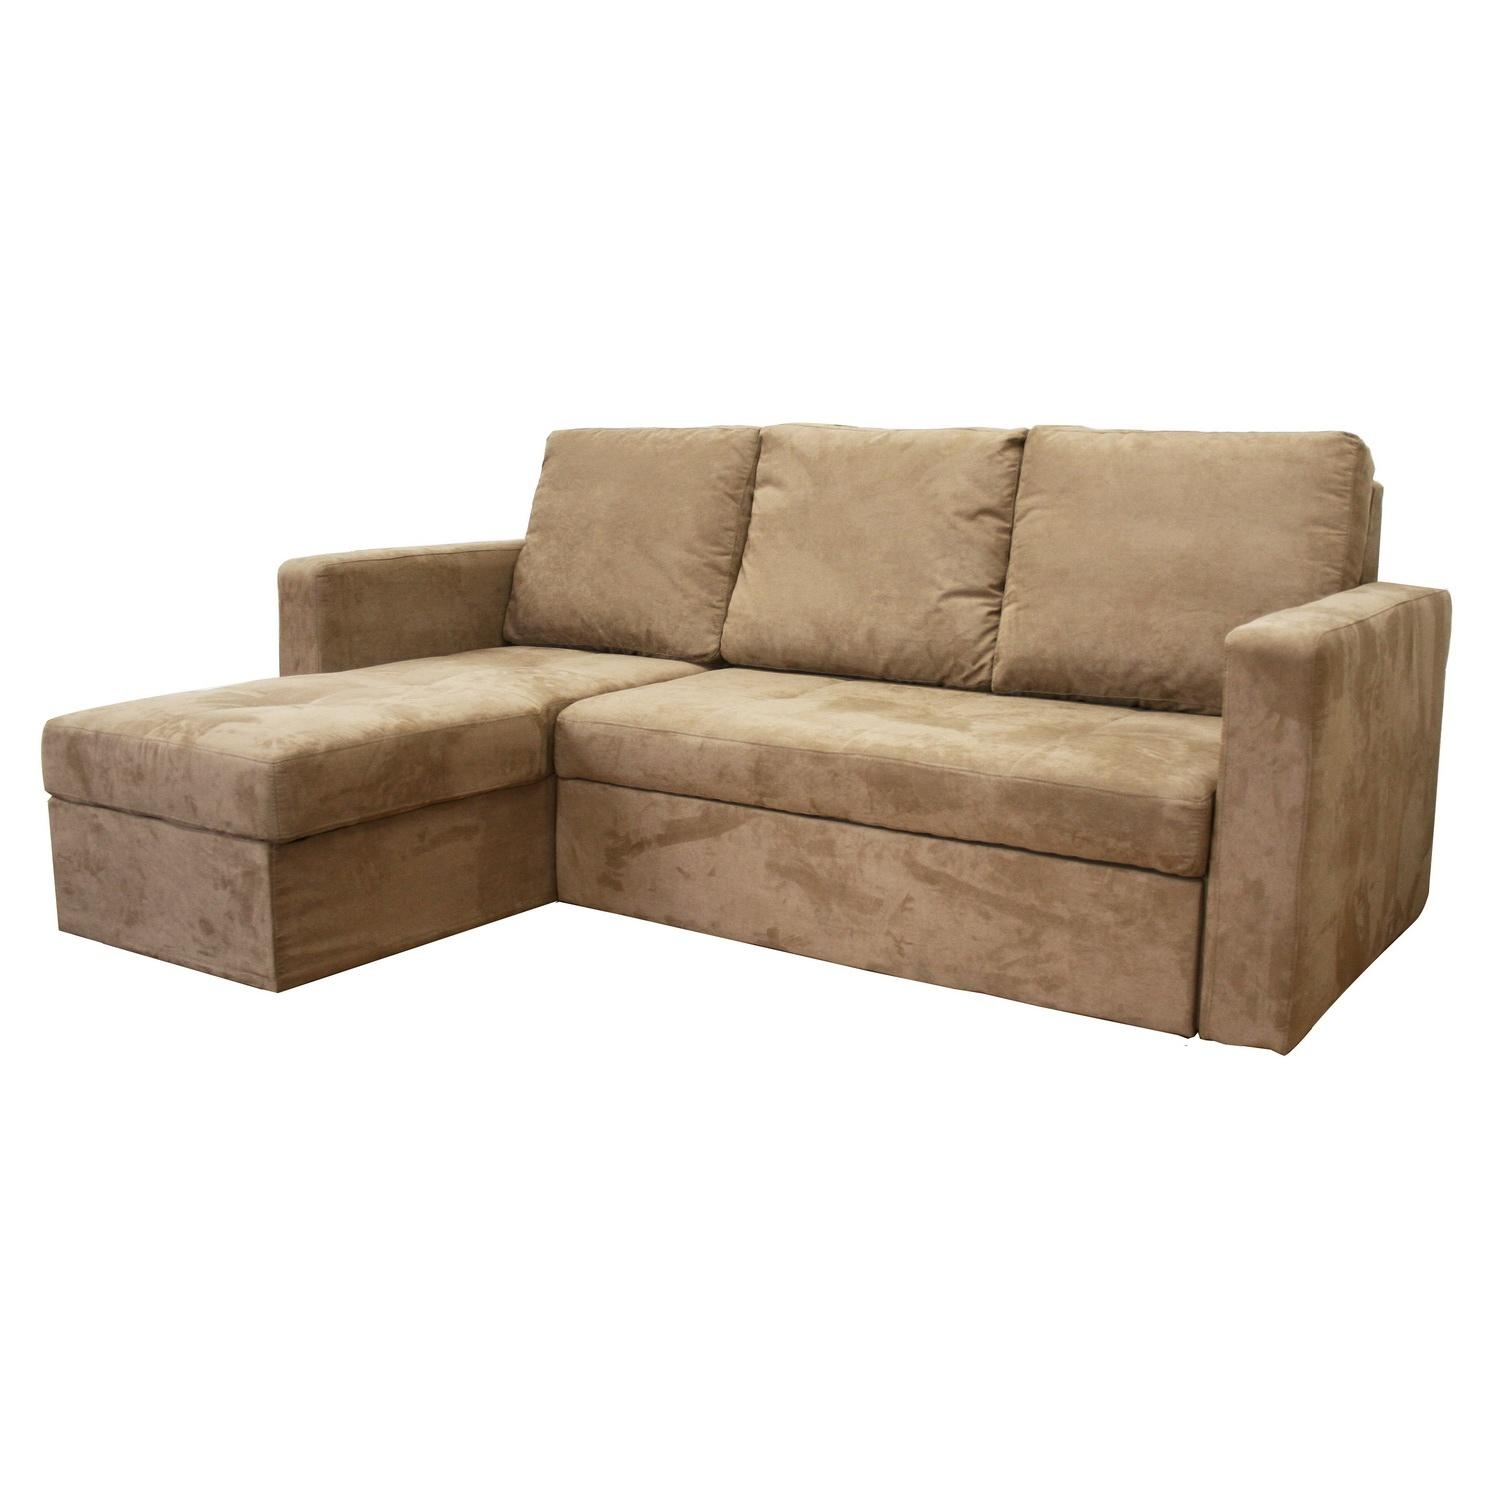 Furniture: Nice Cream Ikea Sectionals Couch For Elegant Living Inside Nice Sectional Couches (Image 9 of 20)